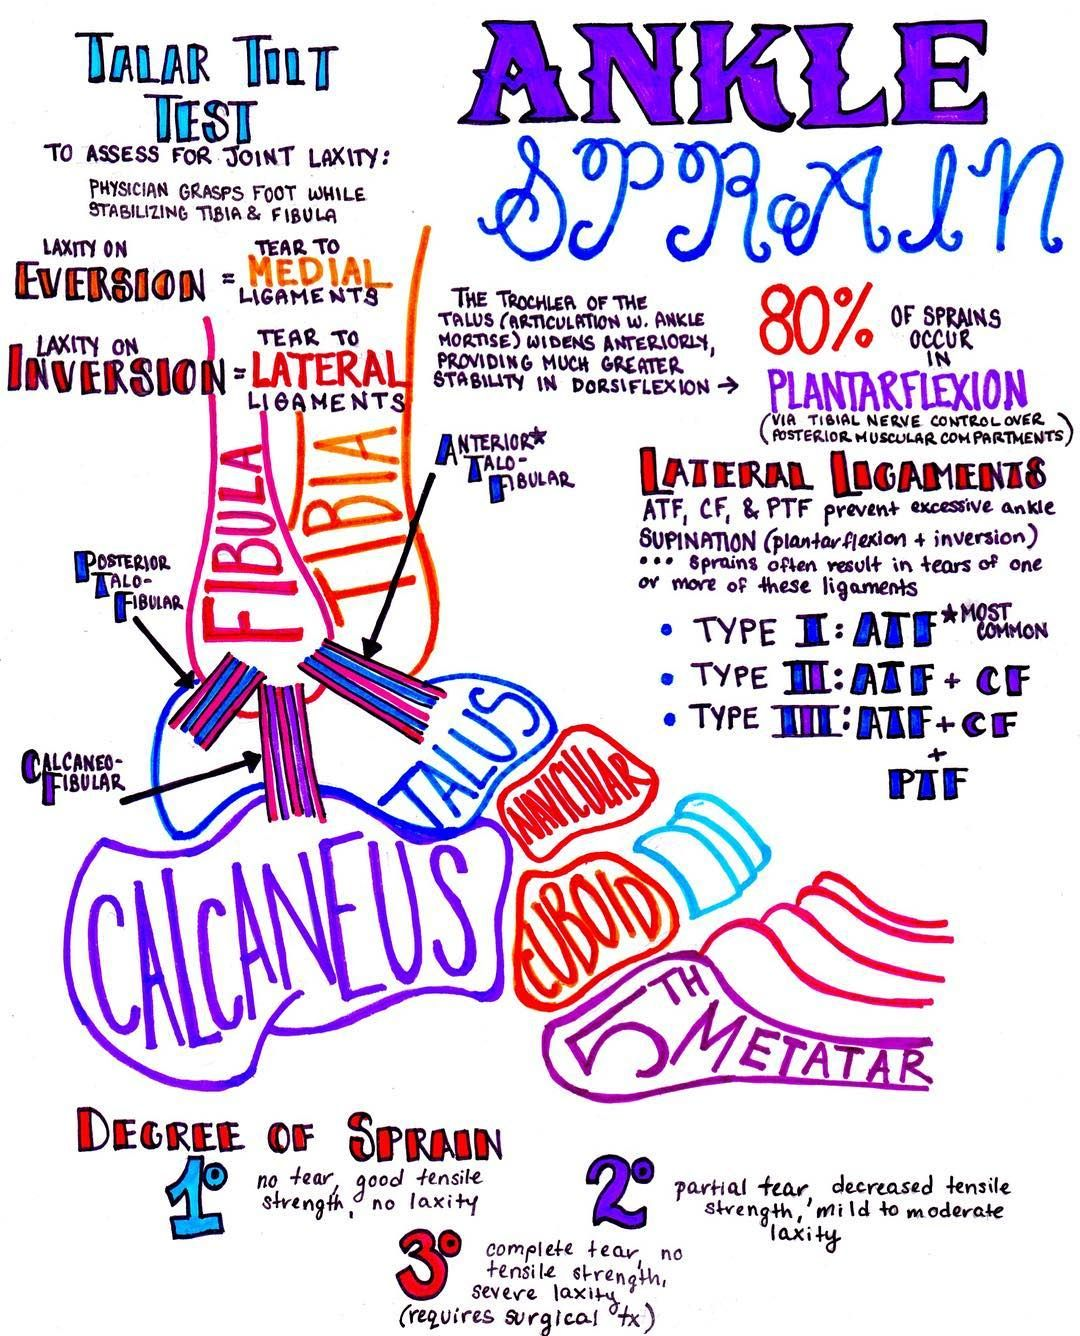 Orthopedic Notes for Medical Students Ankle Sprain